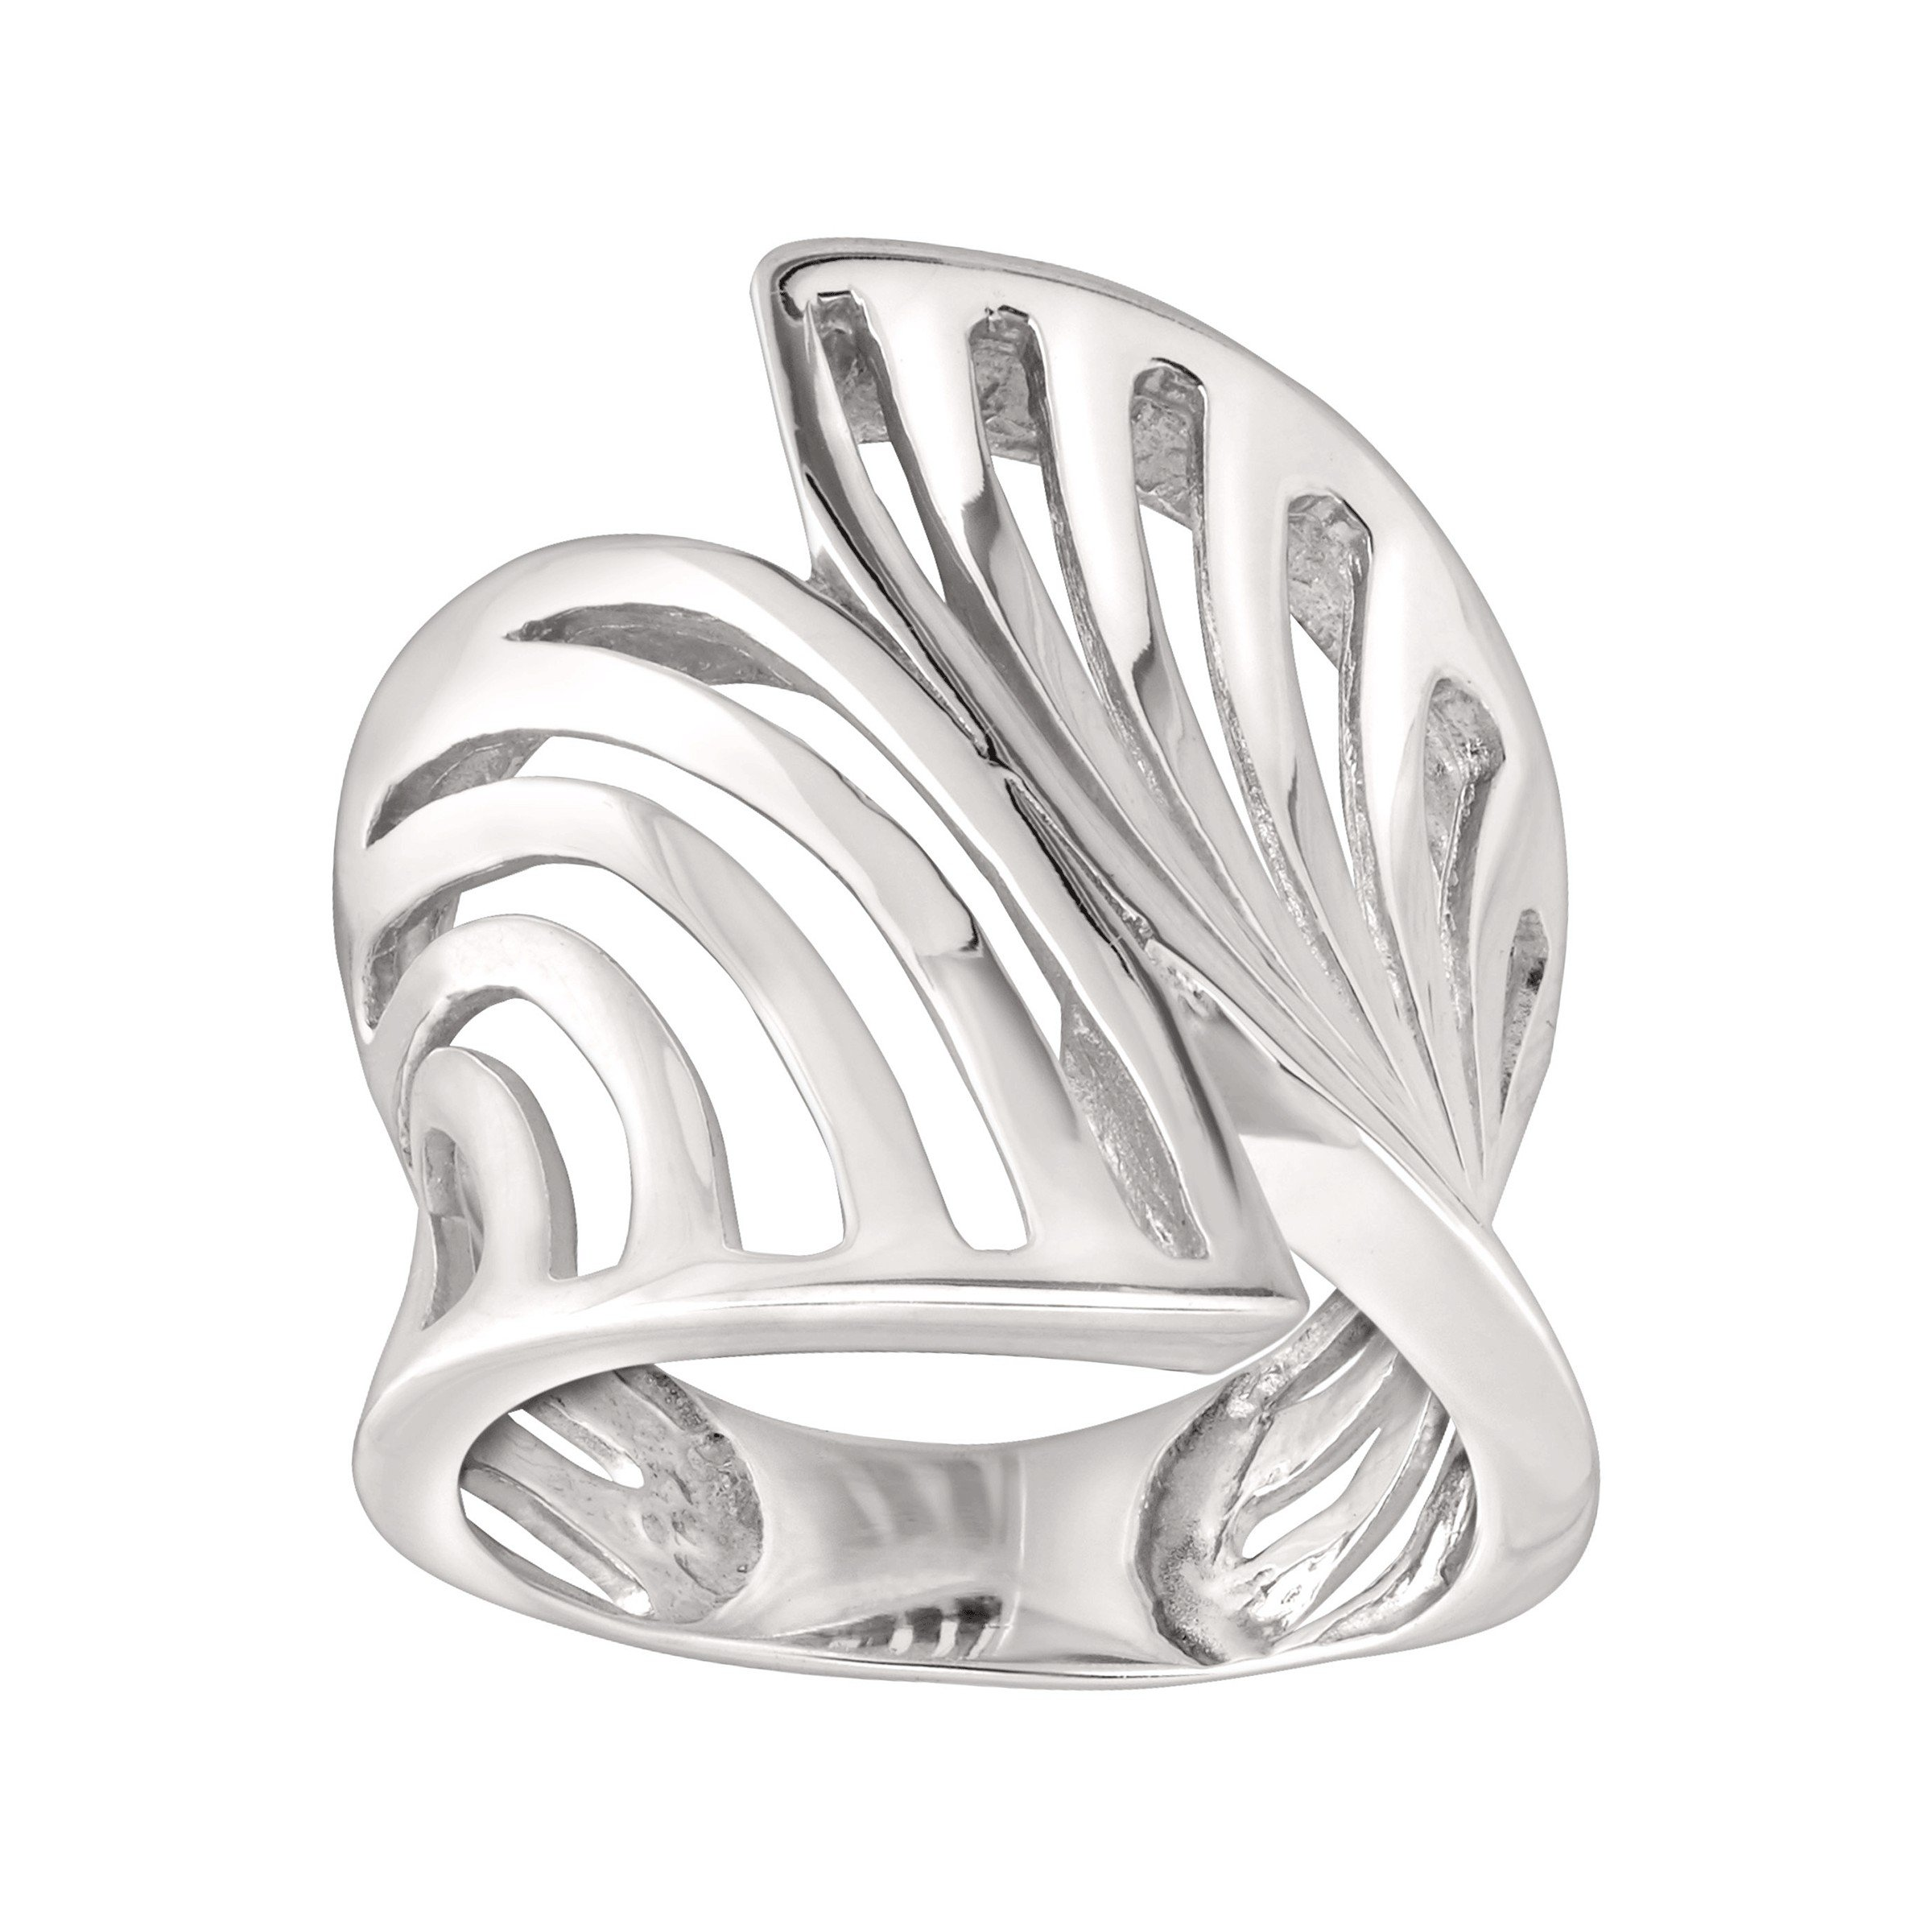 Silpada 'Sea Shore' Cut-Out Ring in Sterling Silver